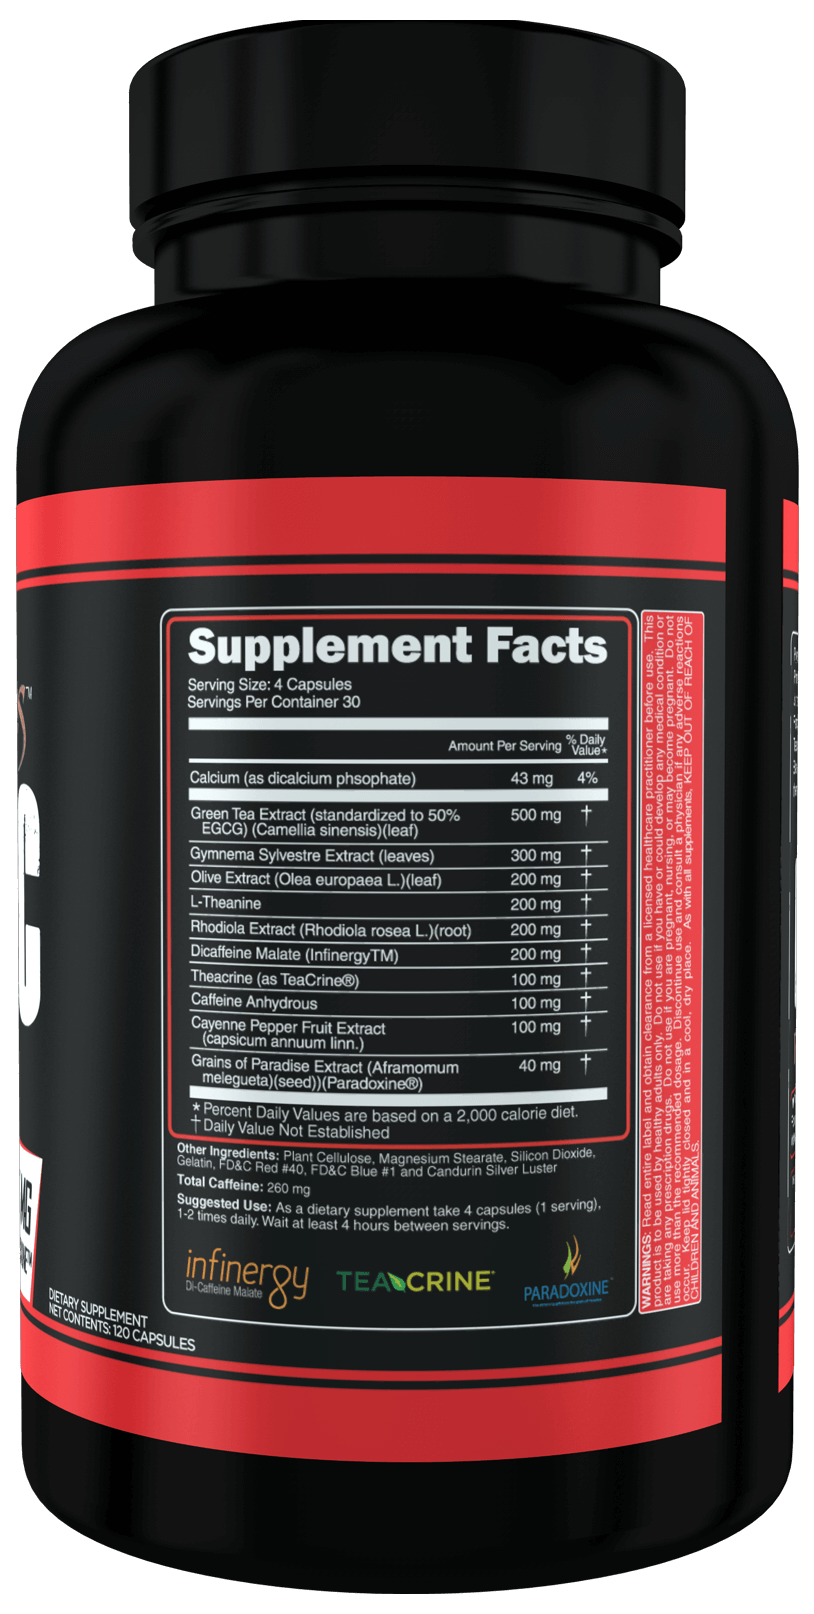 Pyretic black 2 high-end supps